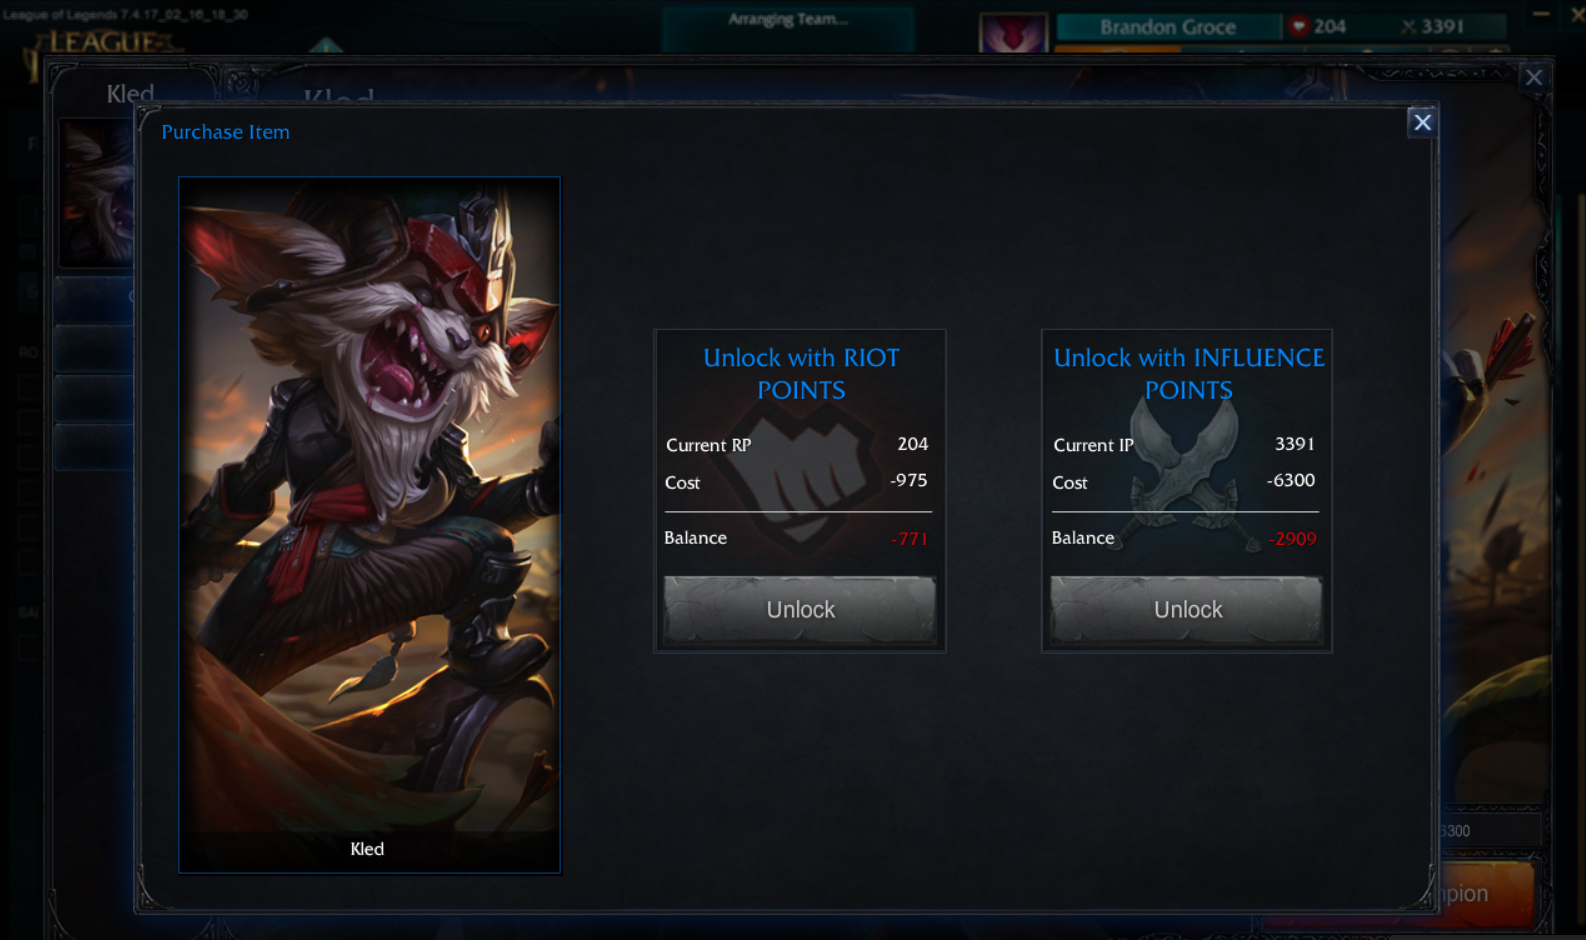 Current League of Legends Checkout Experience